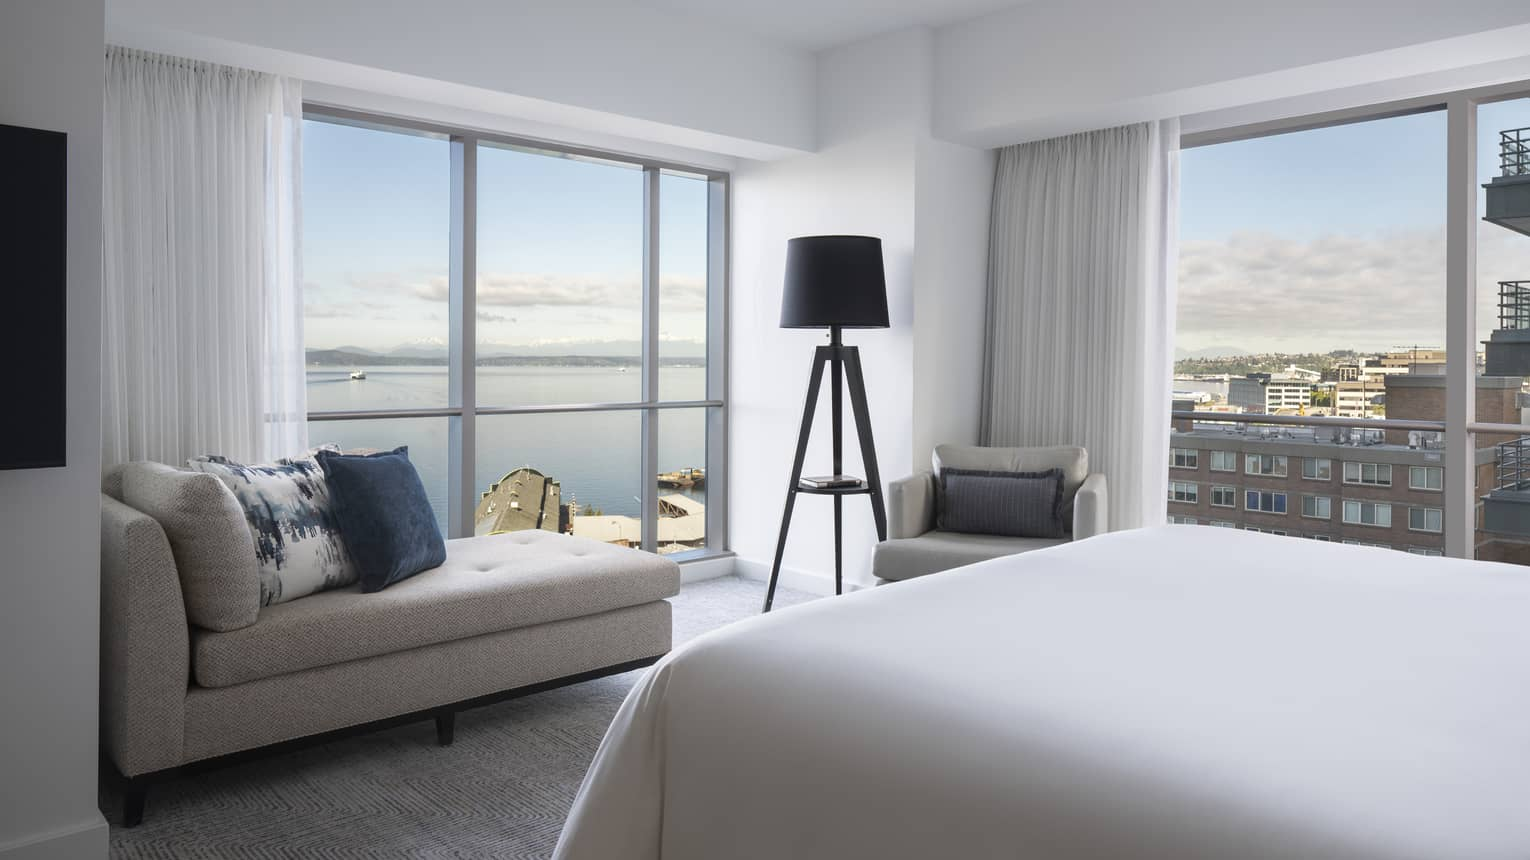 The well-lit Bay Suite overlooks boats sailing along Elliot Bay